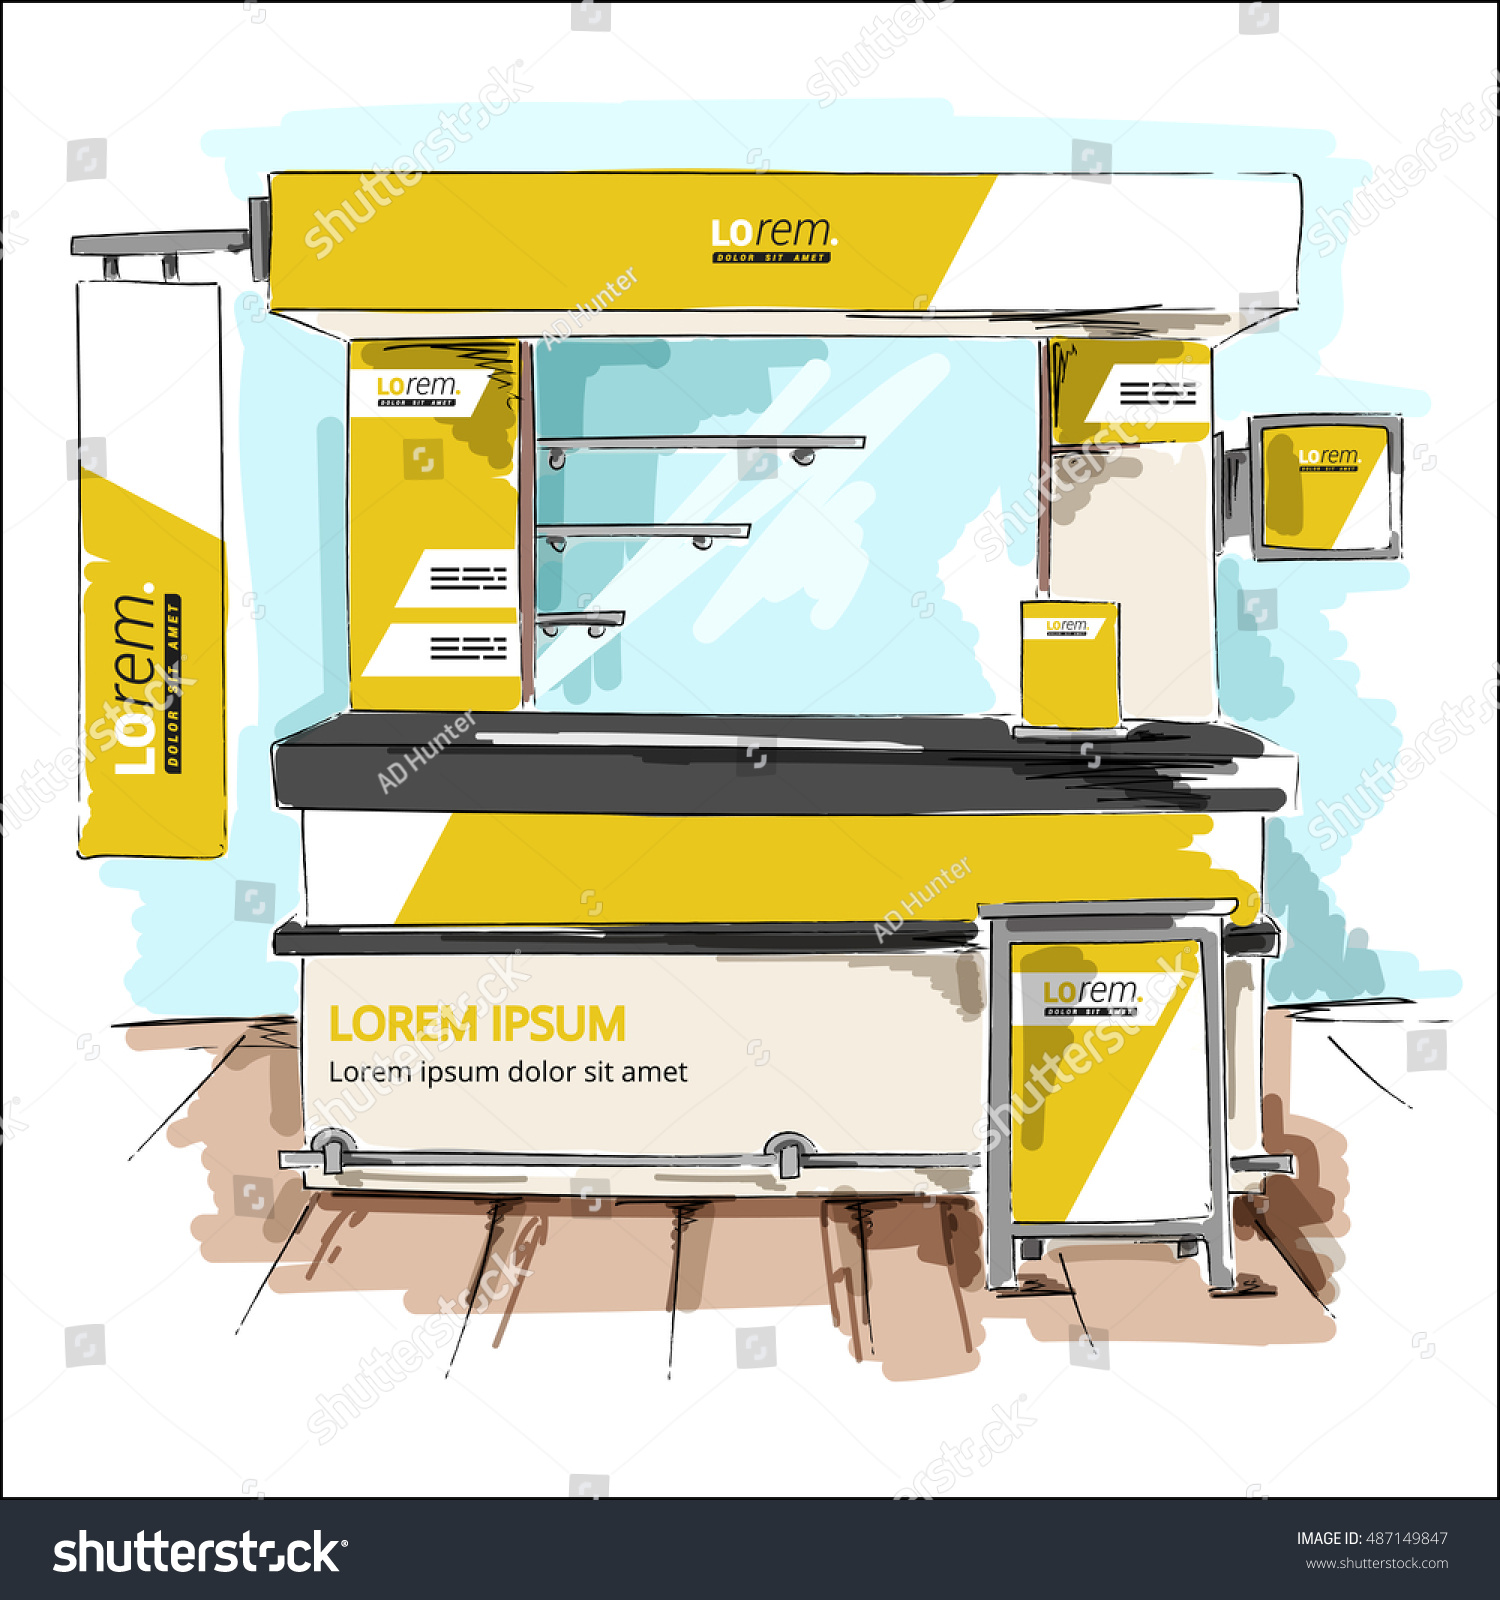 Exhibition Stand Design Brief Template : Photo booth template design image collections